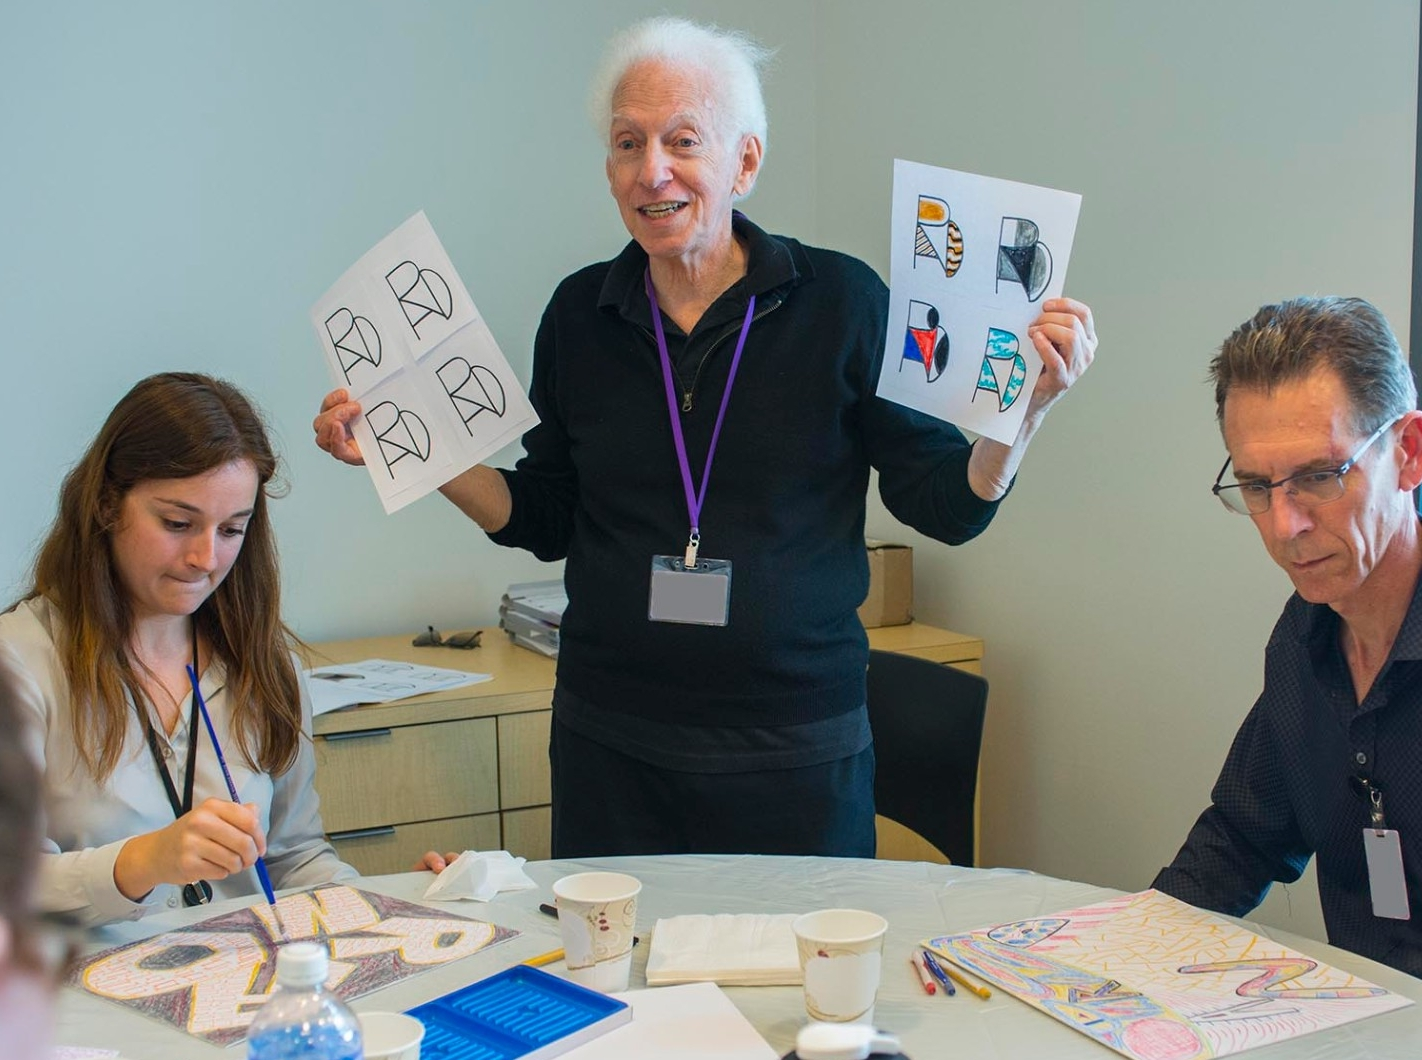 Phillip Ratner leads a creative workshop